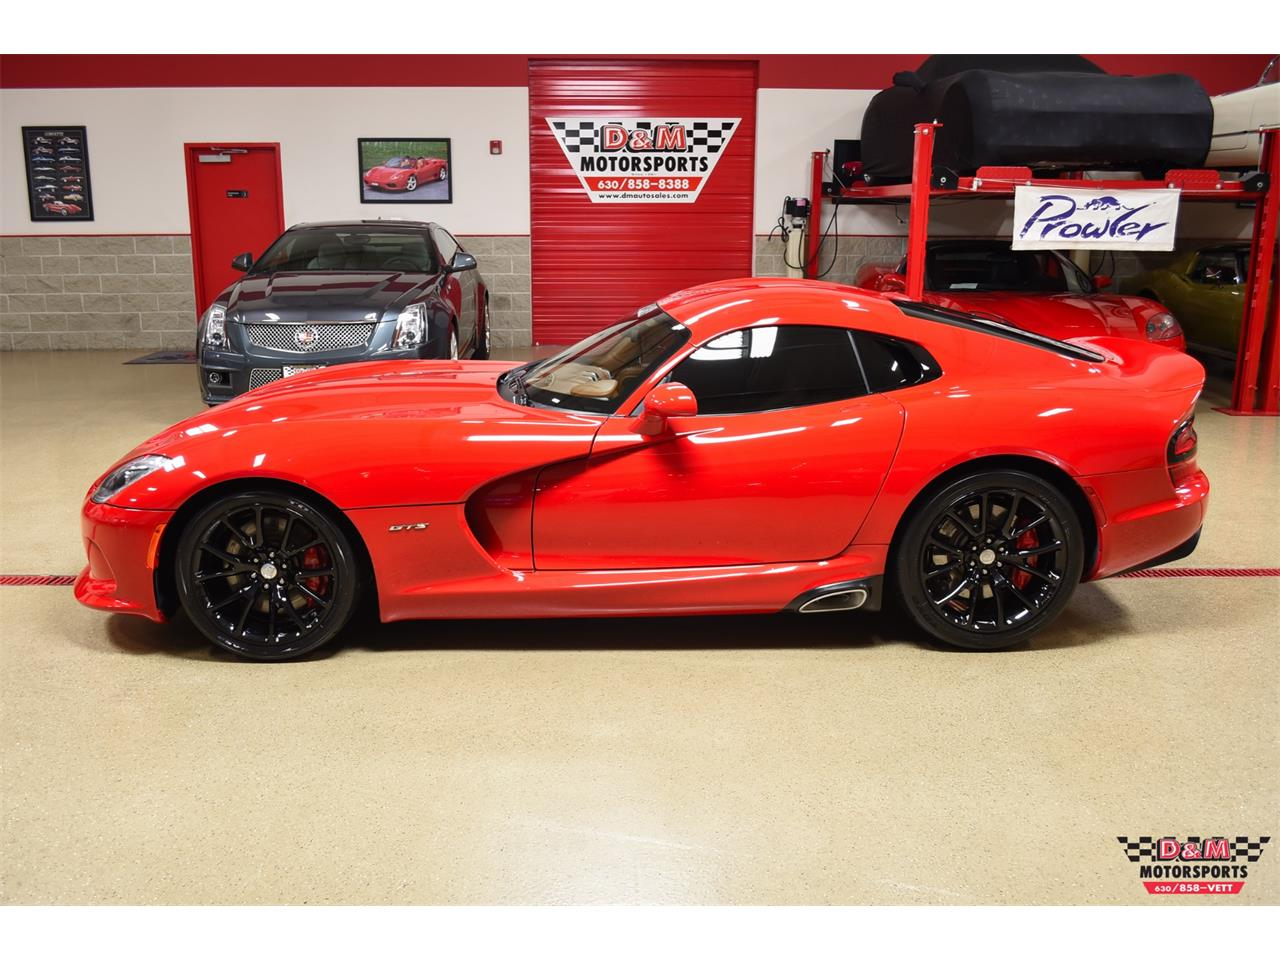 Large Picture of 2013 Dodge Viper - $74,995.00 - PTPC